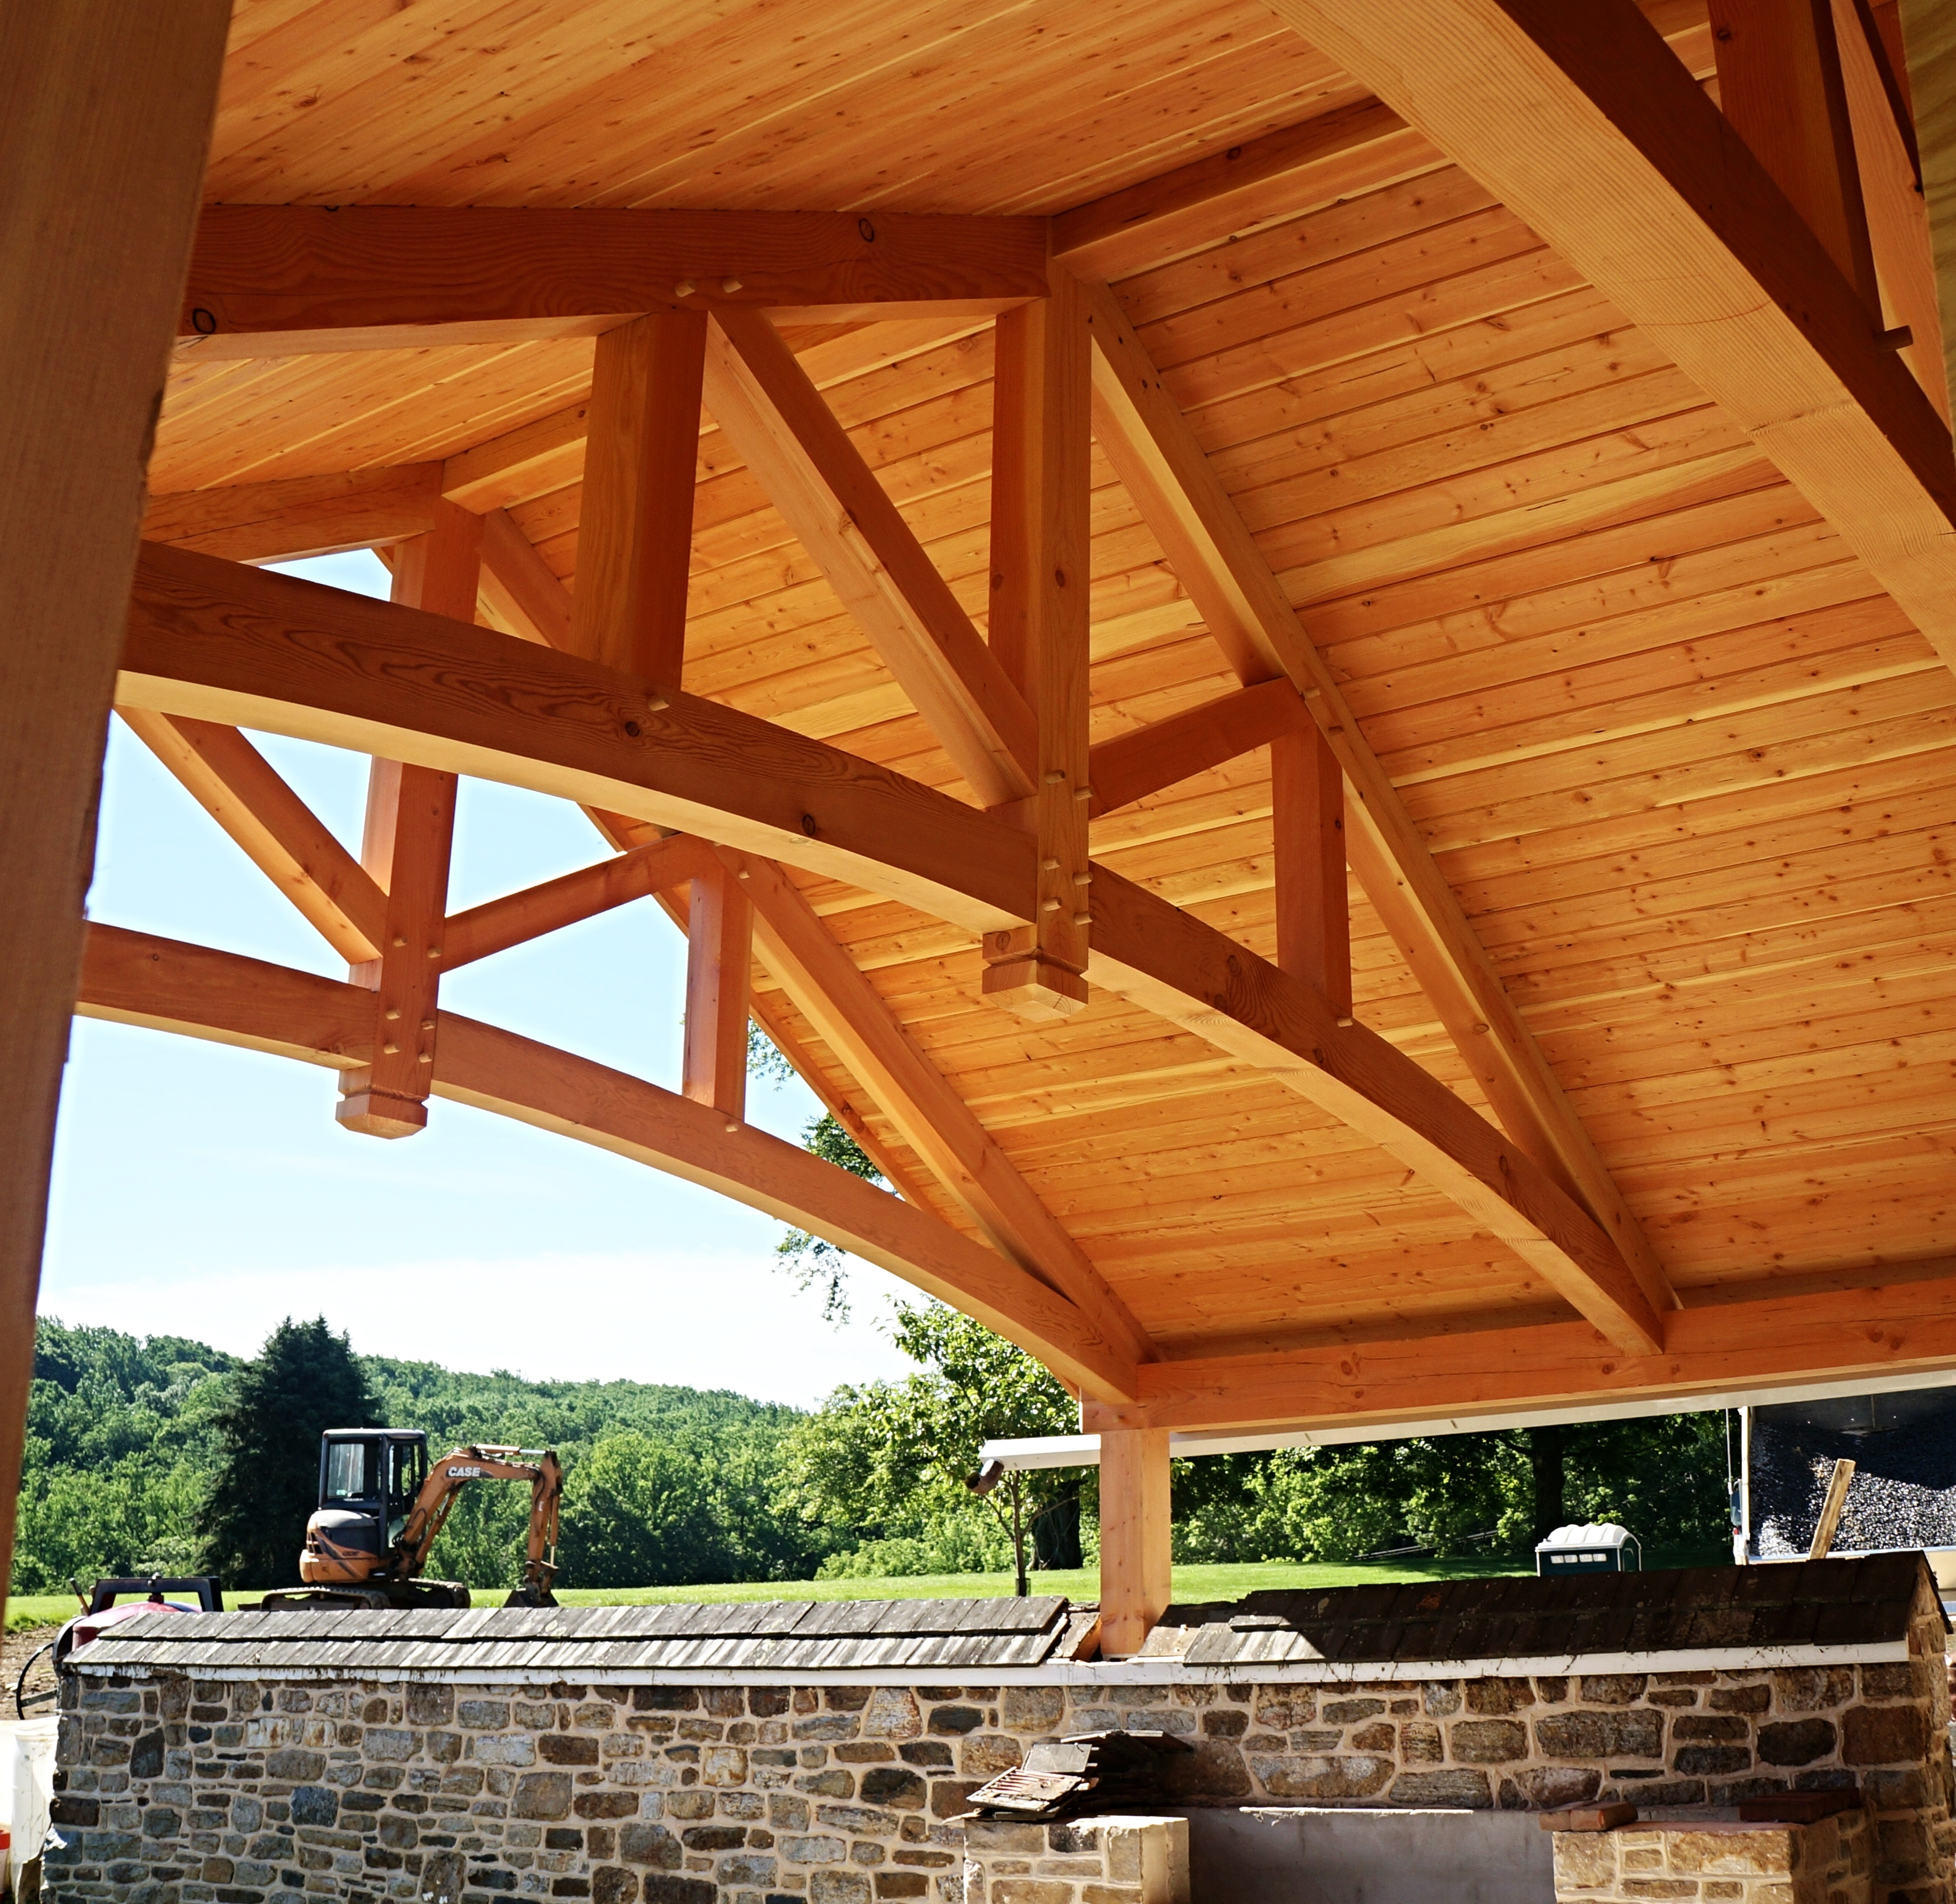 truss-melding-old-new-remodel-addition-chester-county.jpg